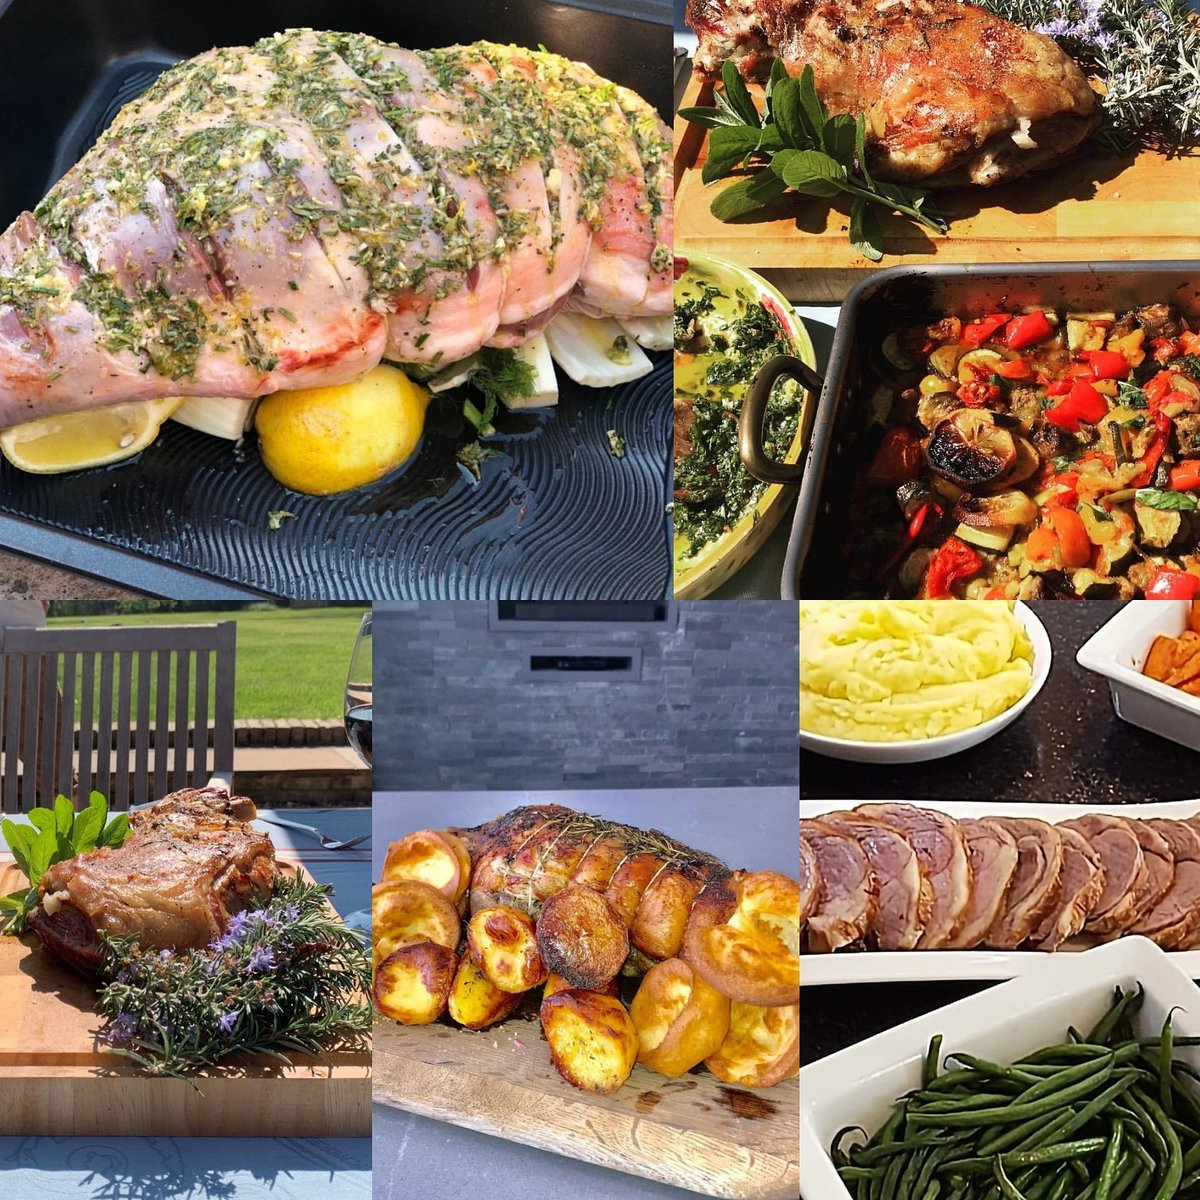 Aubrey's cooks were out in force this weekend - look at all these lovely lamb dishes! #bankholiday #aubreyinspires https://t.co/nxh36UZgOi